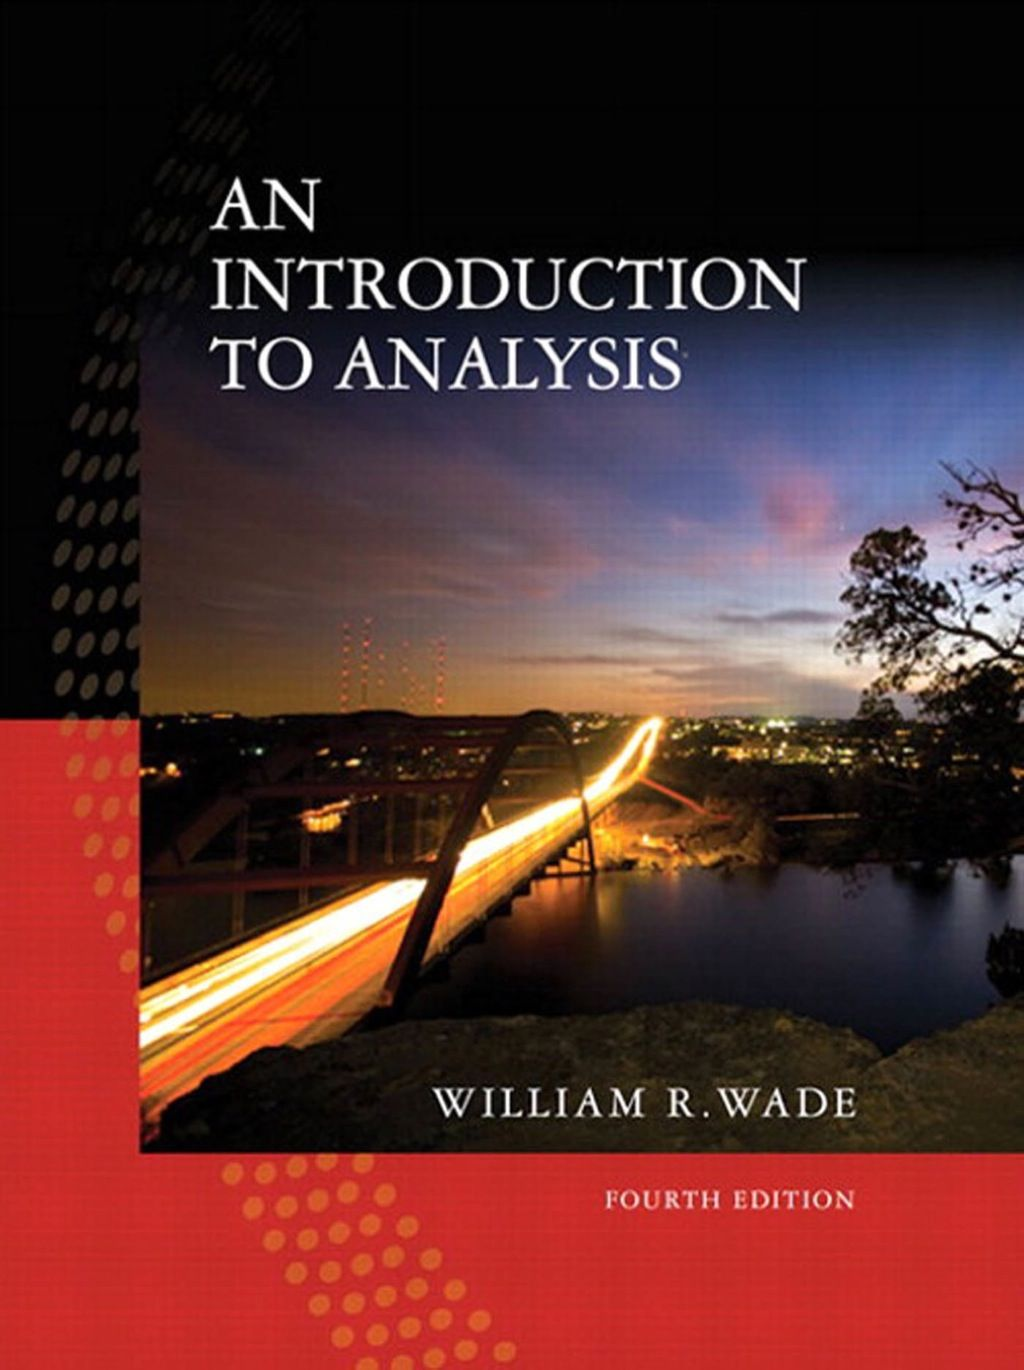 Introduction To Analysis An Subscription 4th Edition Ebook Rental In 2021 Web Design Quotes Analysis Web Design Company